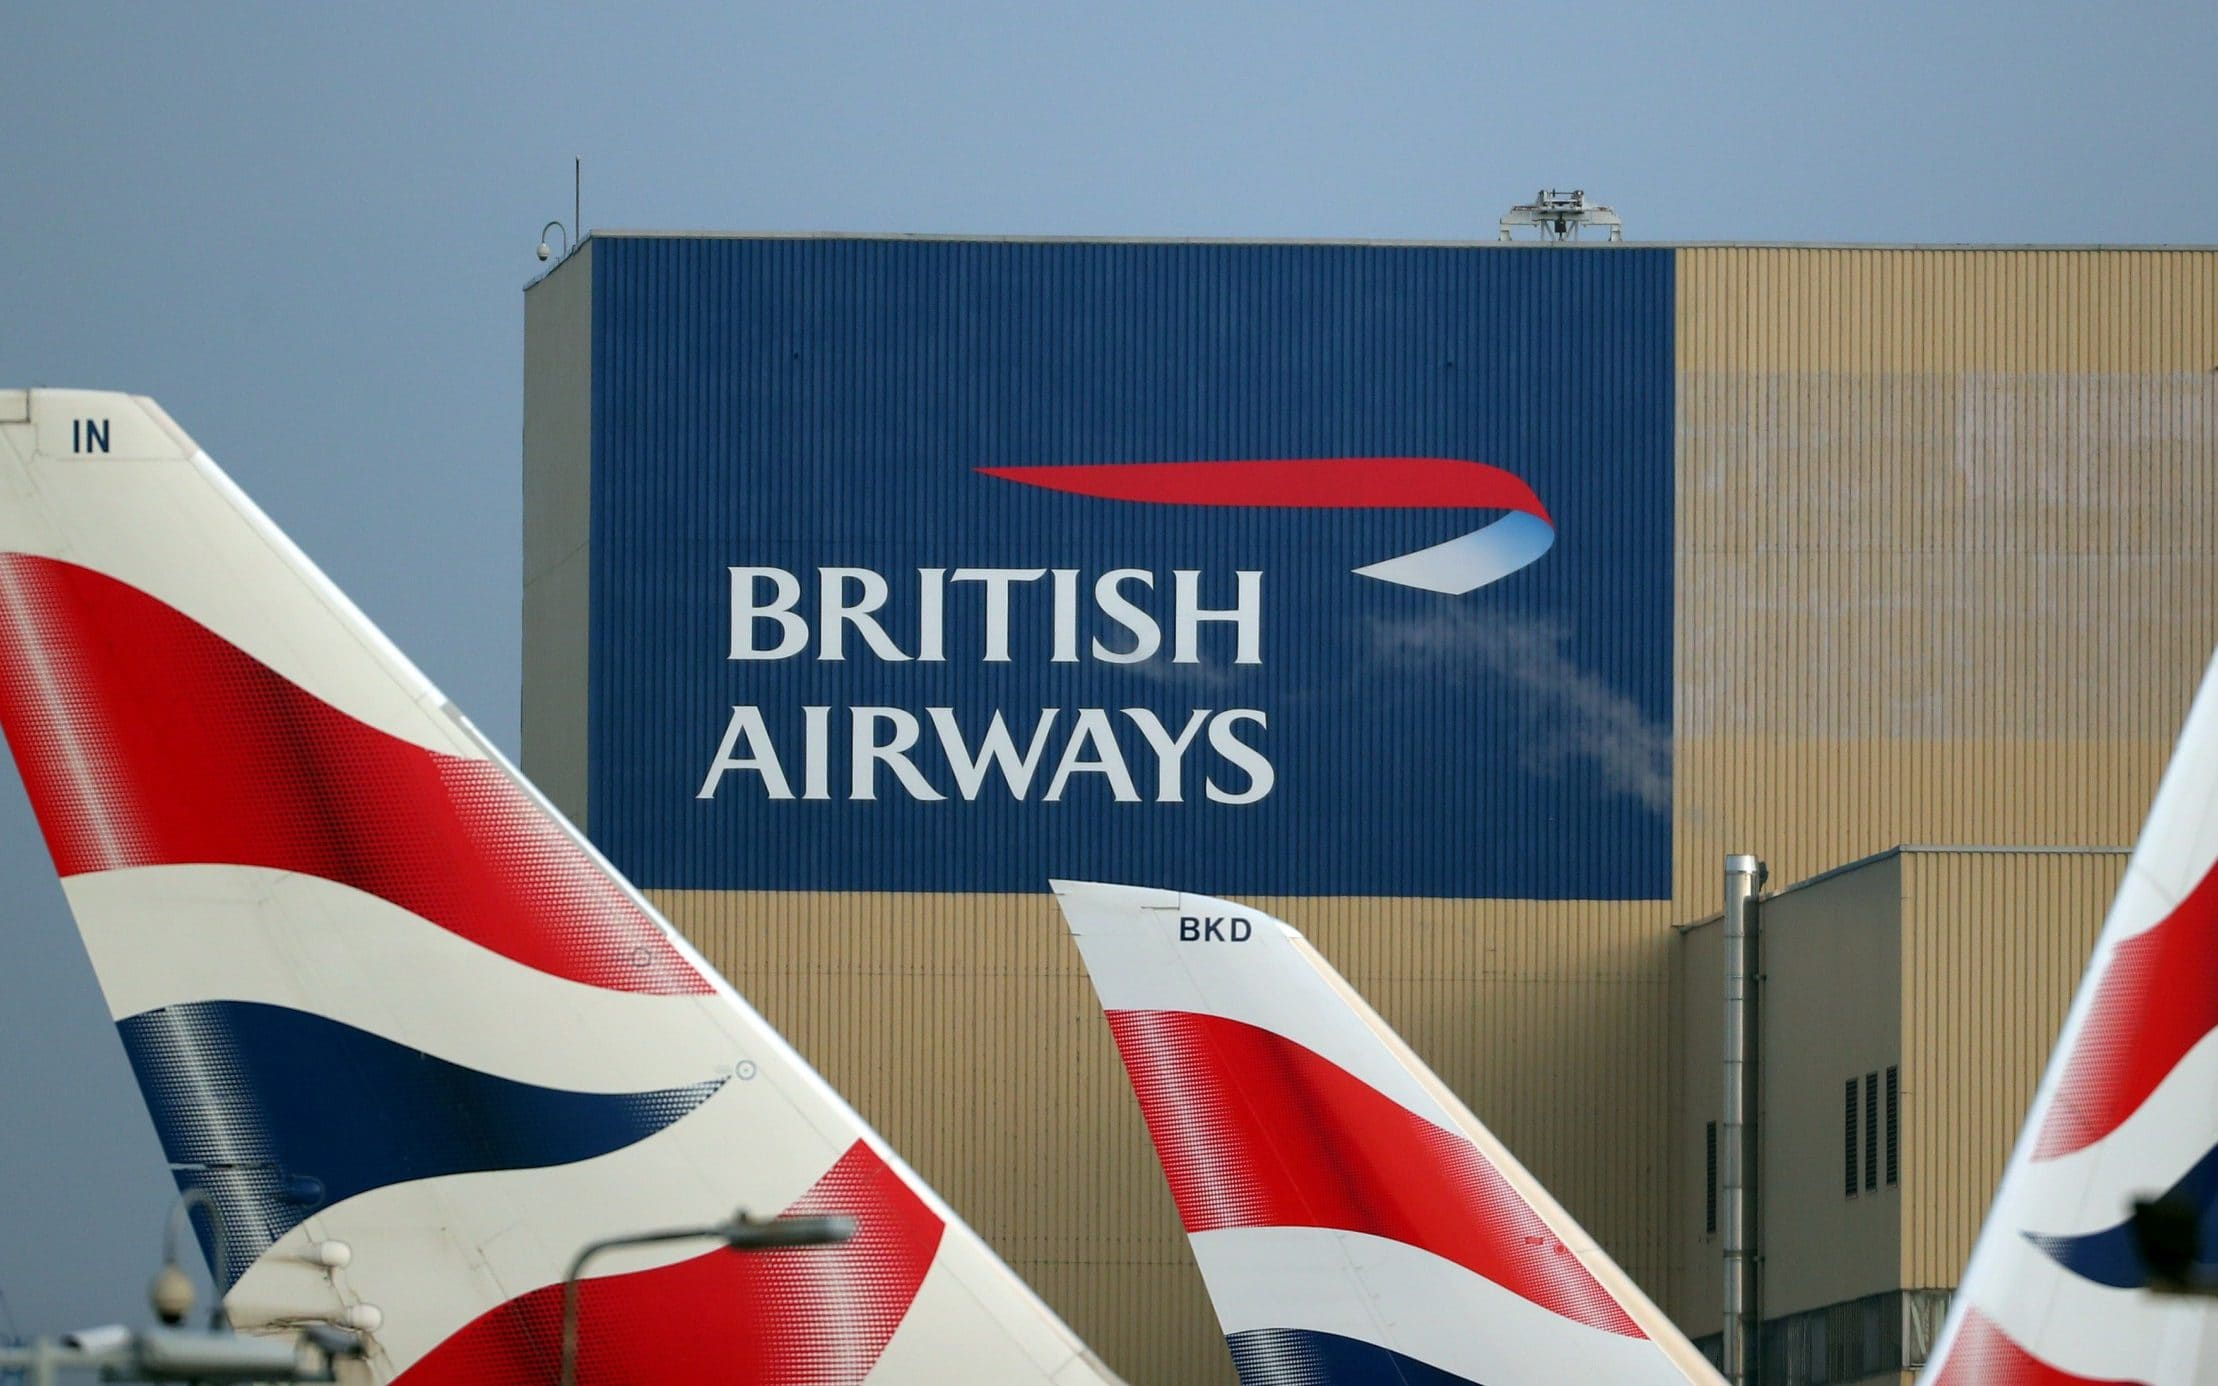 British Airways tells passengers not turn up at airports, as airlines biggest ever strike begins